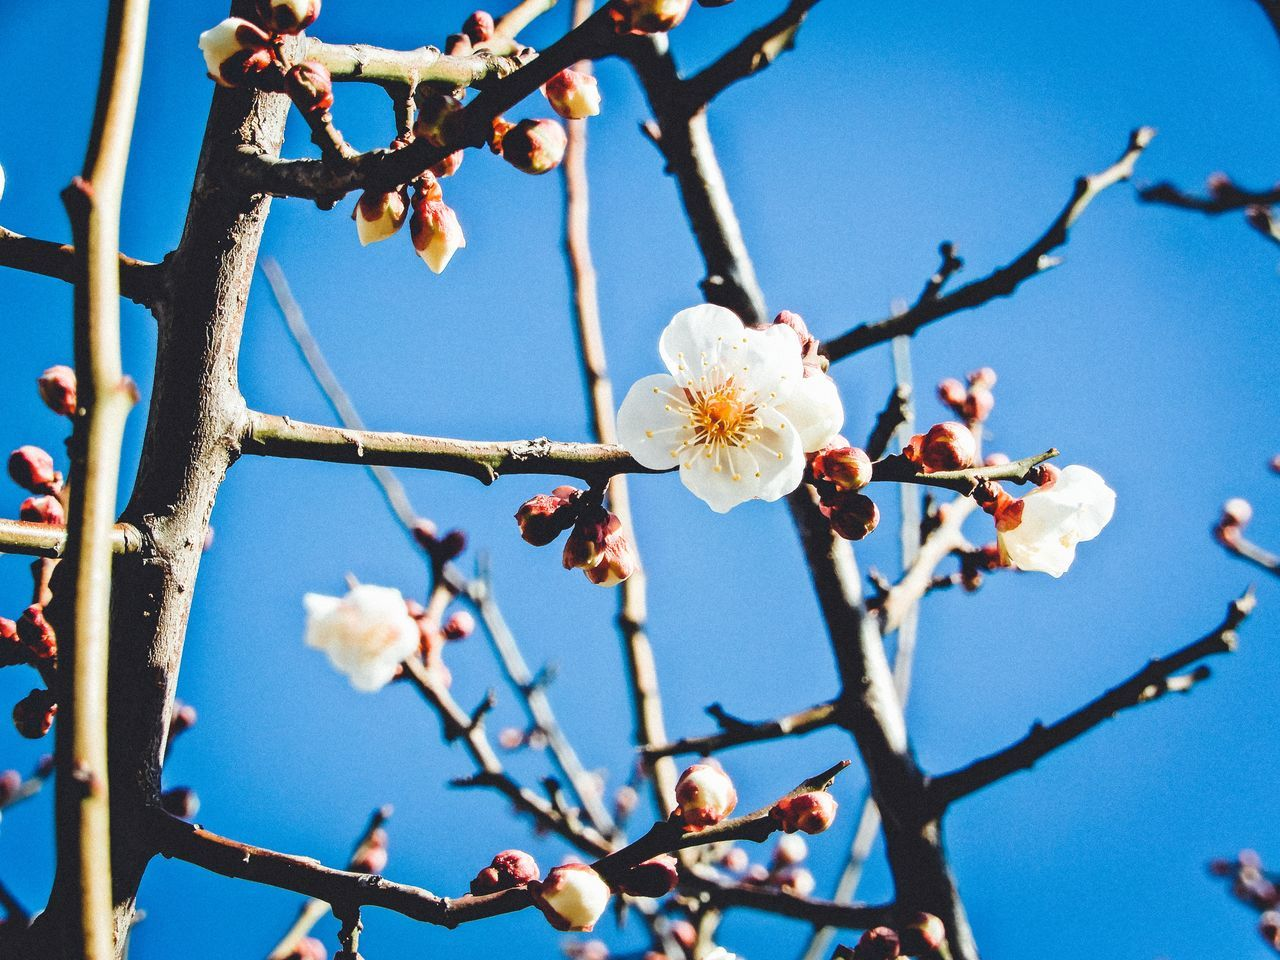 Apple Tree Beautiful Nature Beauty In Nature Beauty In Nature Blooming Blossom Branch Day EyeEm Best Shots EyeEm Nature Lover Flower Flower Head Freshness Growth Lovely Low Angle View Nature Nature No People Outdoors Petal Plum Blossom Sky Tree Twig